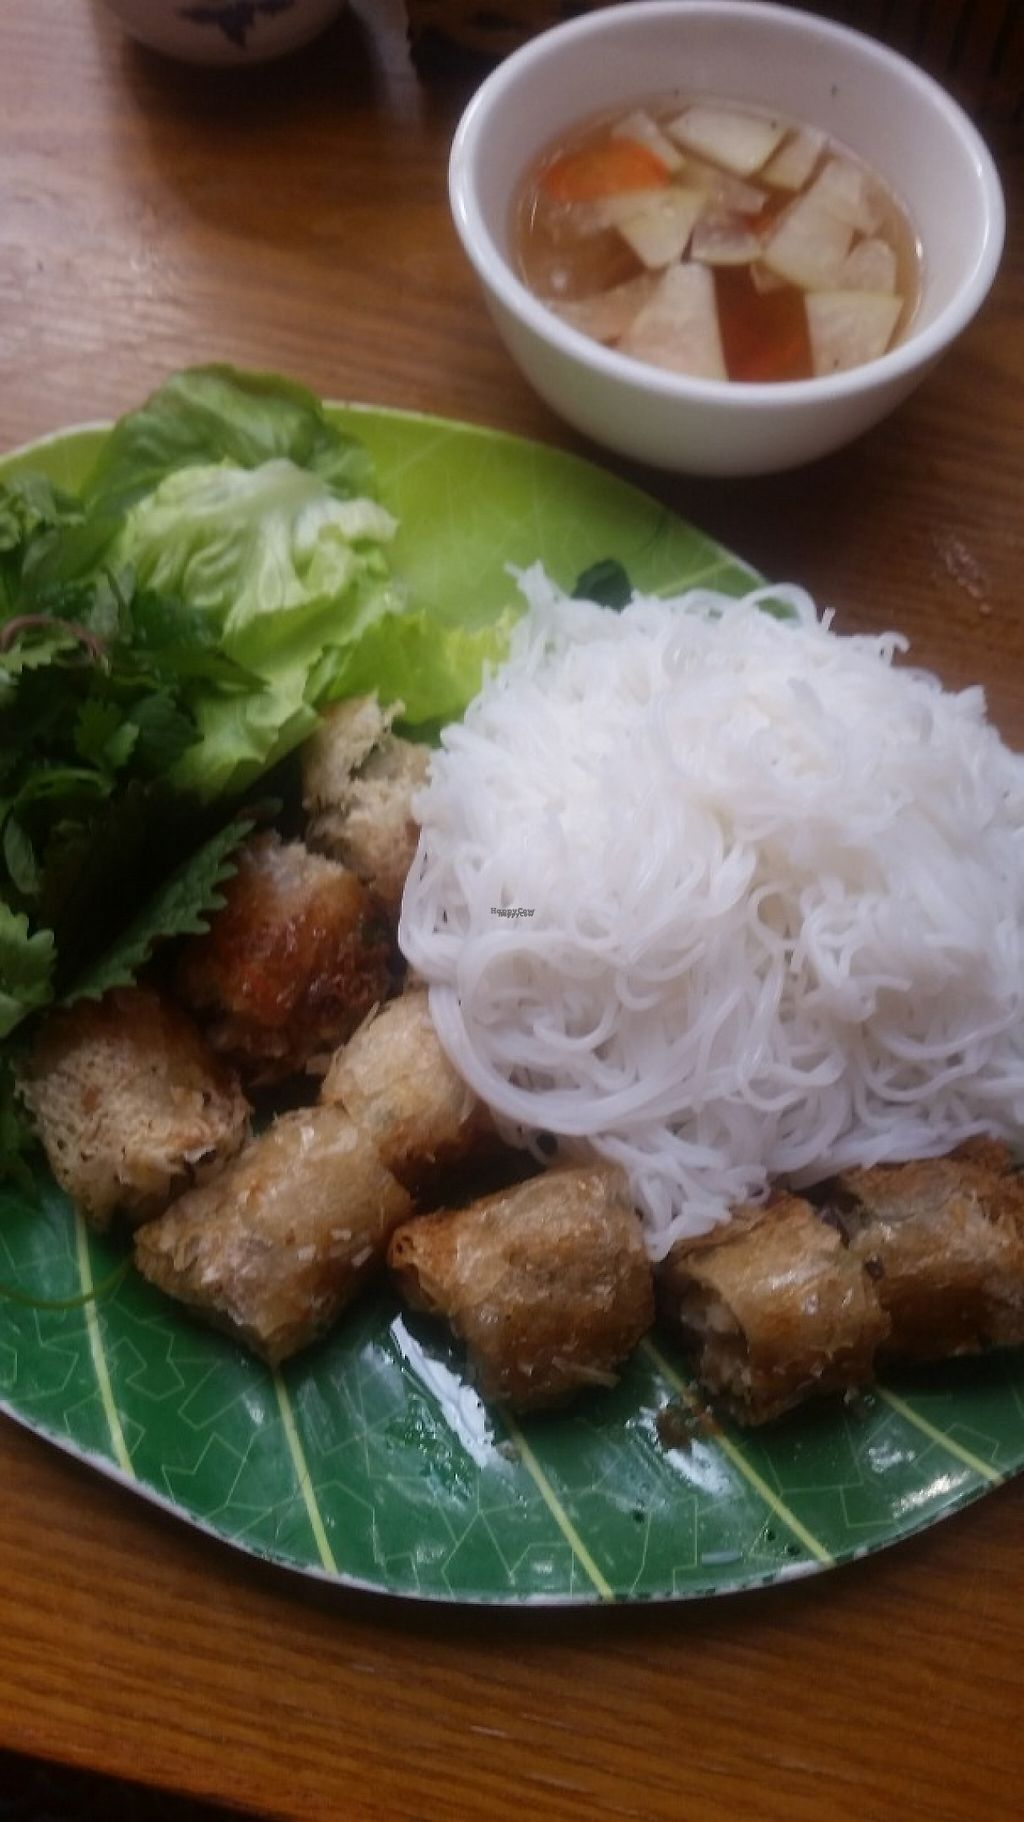 "Photo of Noodle & Roll  by <a href=""/members/profile/Without_Cruelty_Blog"">Without_Cruelty_Blog</a> <br/>Vermicelli and spring rolls <br/> December 9, 2016  - <a href='/contact/abuse/image/70933/198604'>Report</a>"